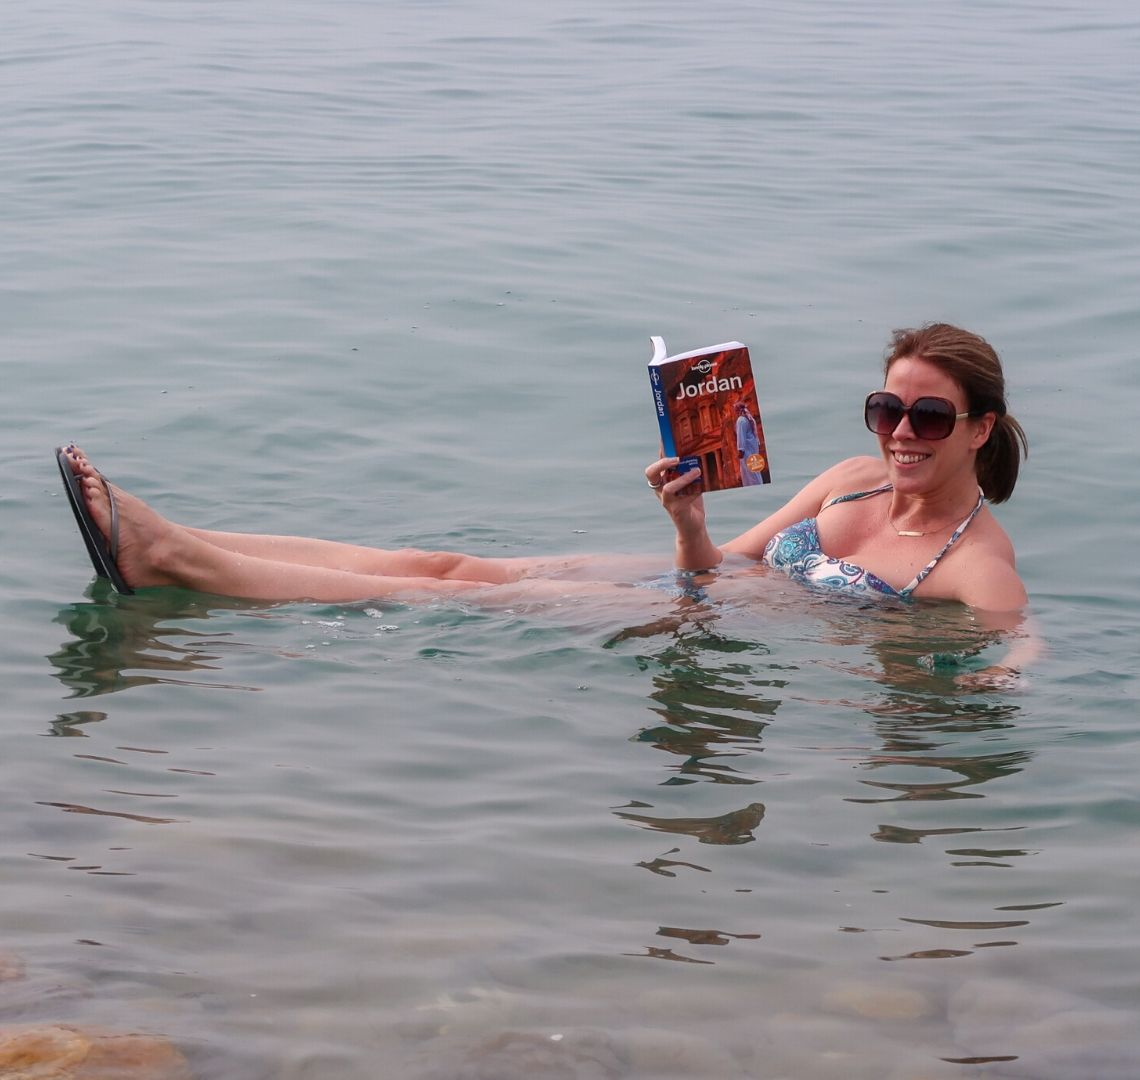 Things To Do In Jordan - Dead Sea - I am floating sitting up and pretending to read the Lonely Planet - Jordan